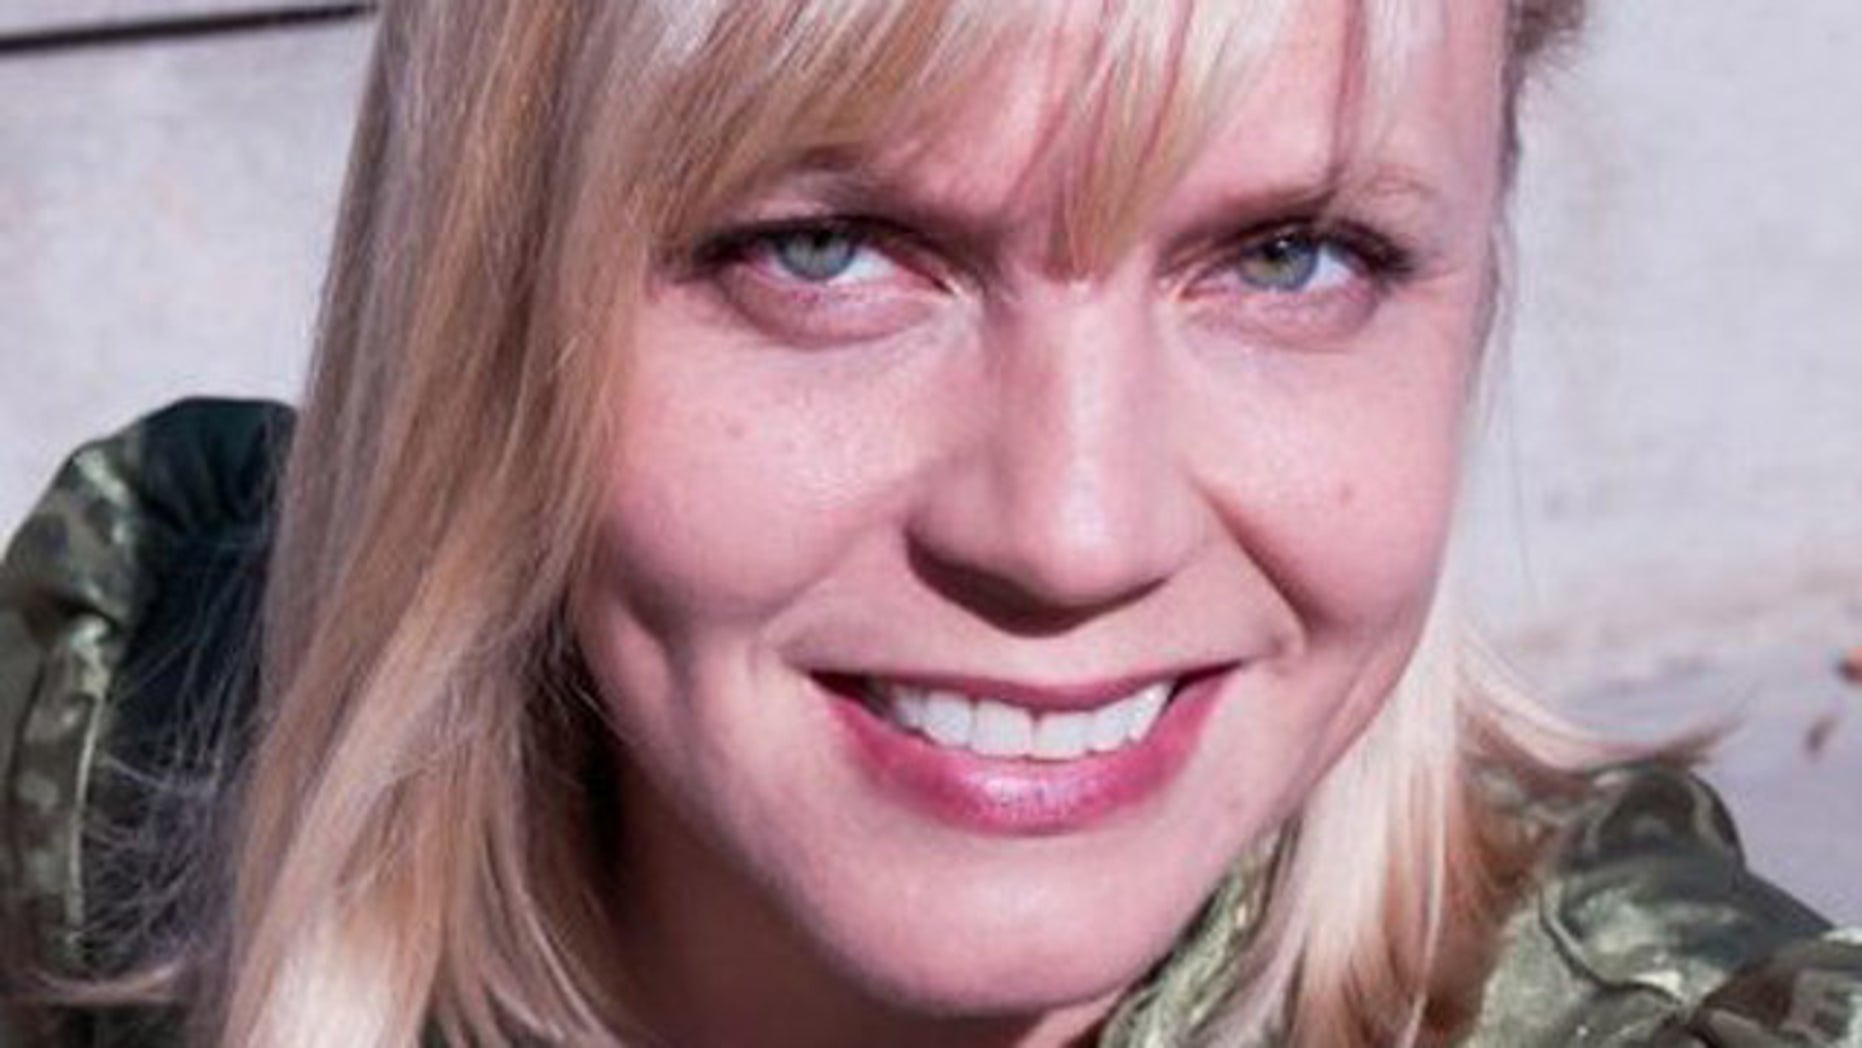 Amy Ahonen, 38, was last seen on Friday. Investigators later found her jeep abandoned along a remote Colorado highway -- with her personal belongings inside.